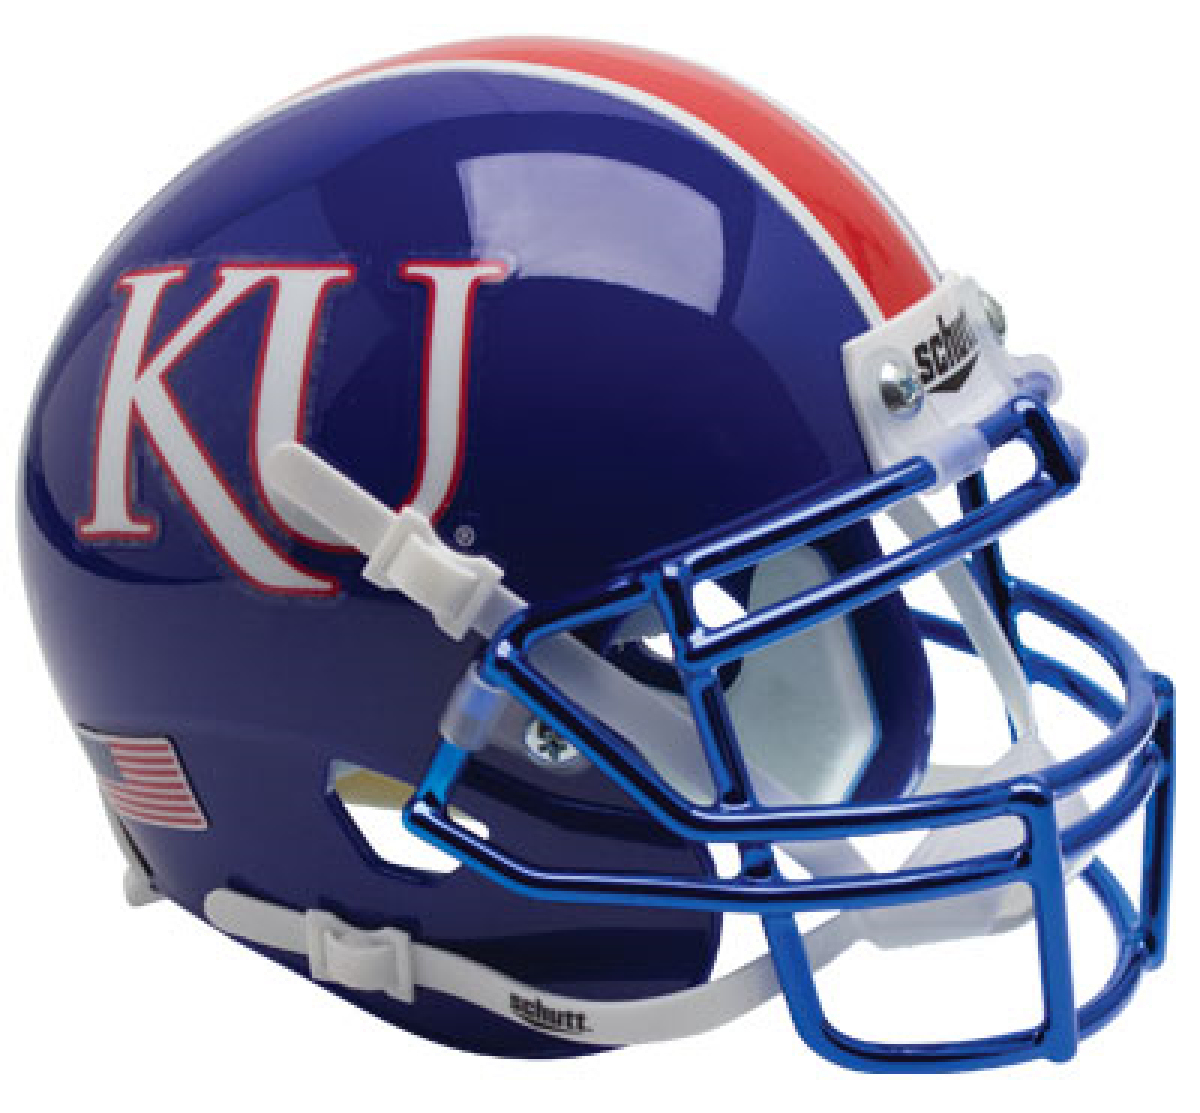 Kansas Jayhawks Authentic College XP Football Helmet Schutt <B>Blue with Chrome Mask</B>